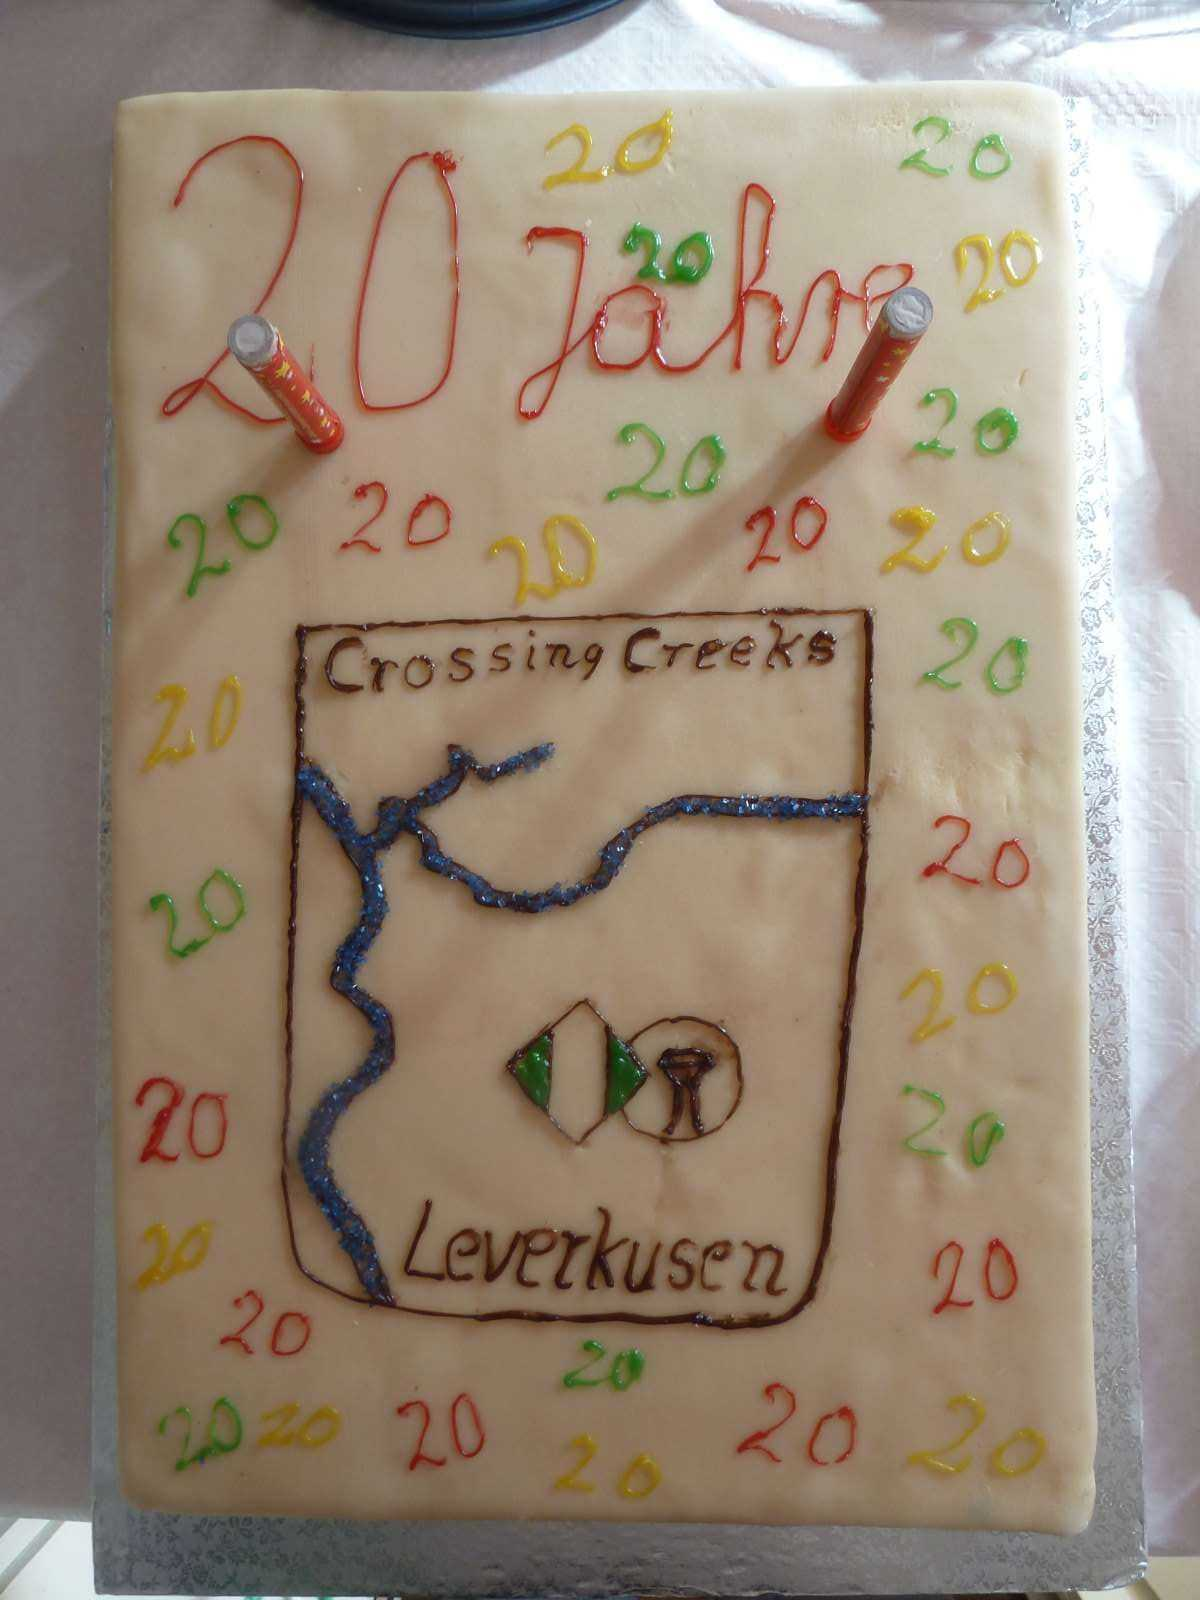 20 Jahre Crossing Creeks_CCL14_27.10.`12